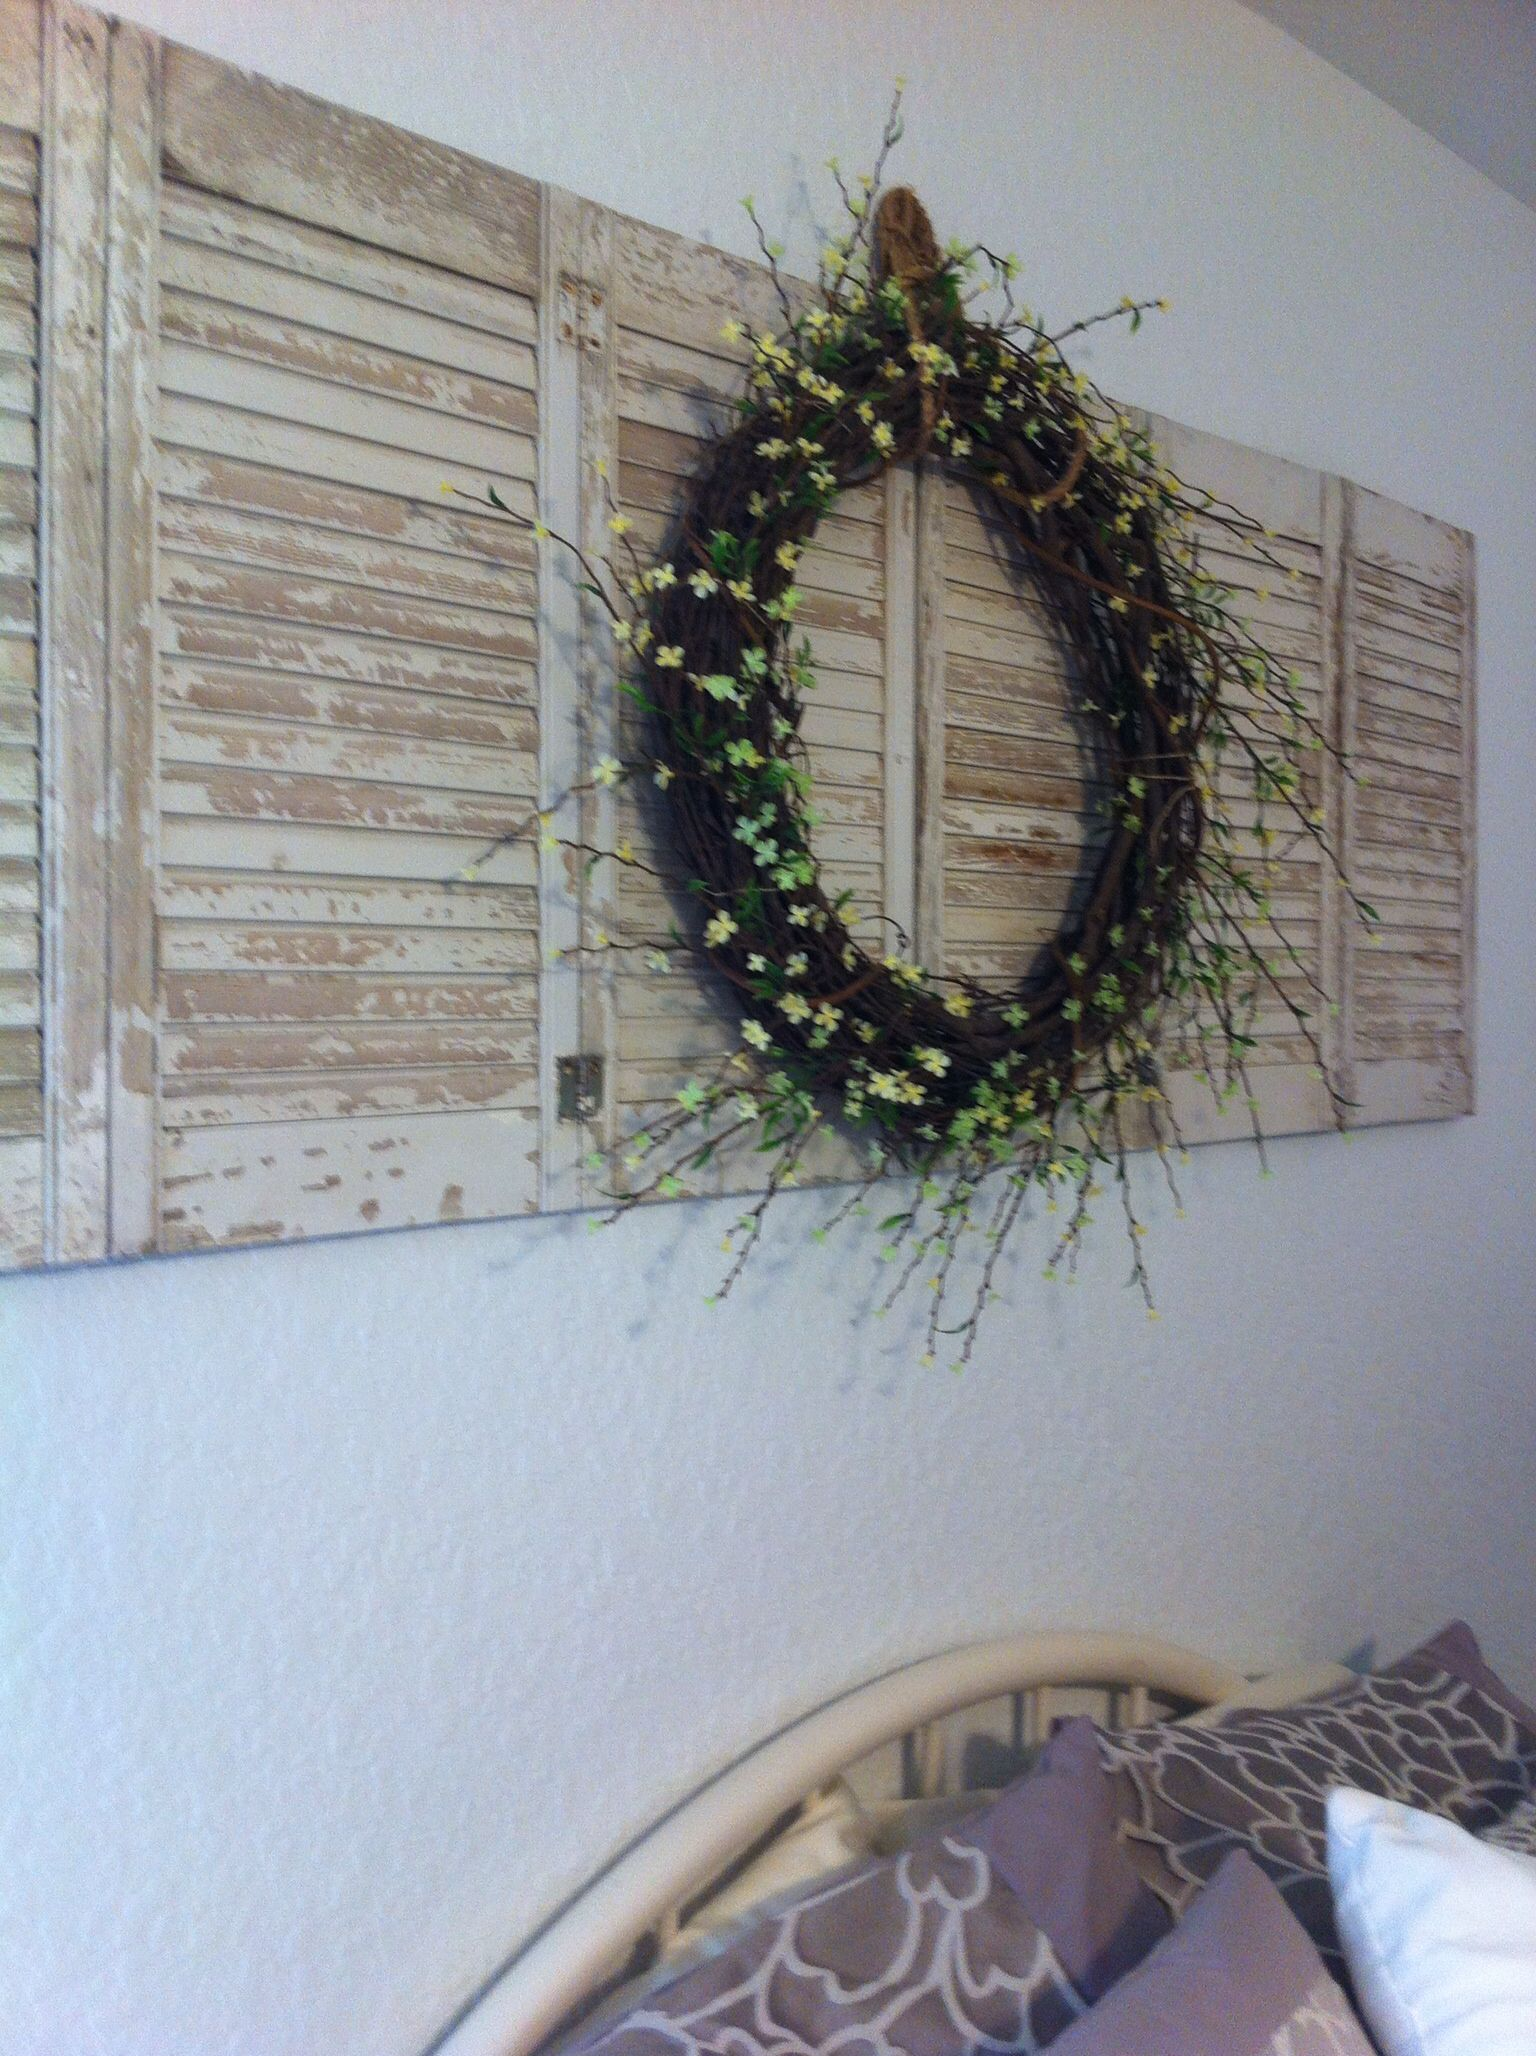 Wall Art Behind Bed Diy Wreath On Shutters For Above Bed Decor Successes